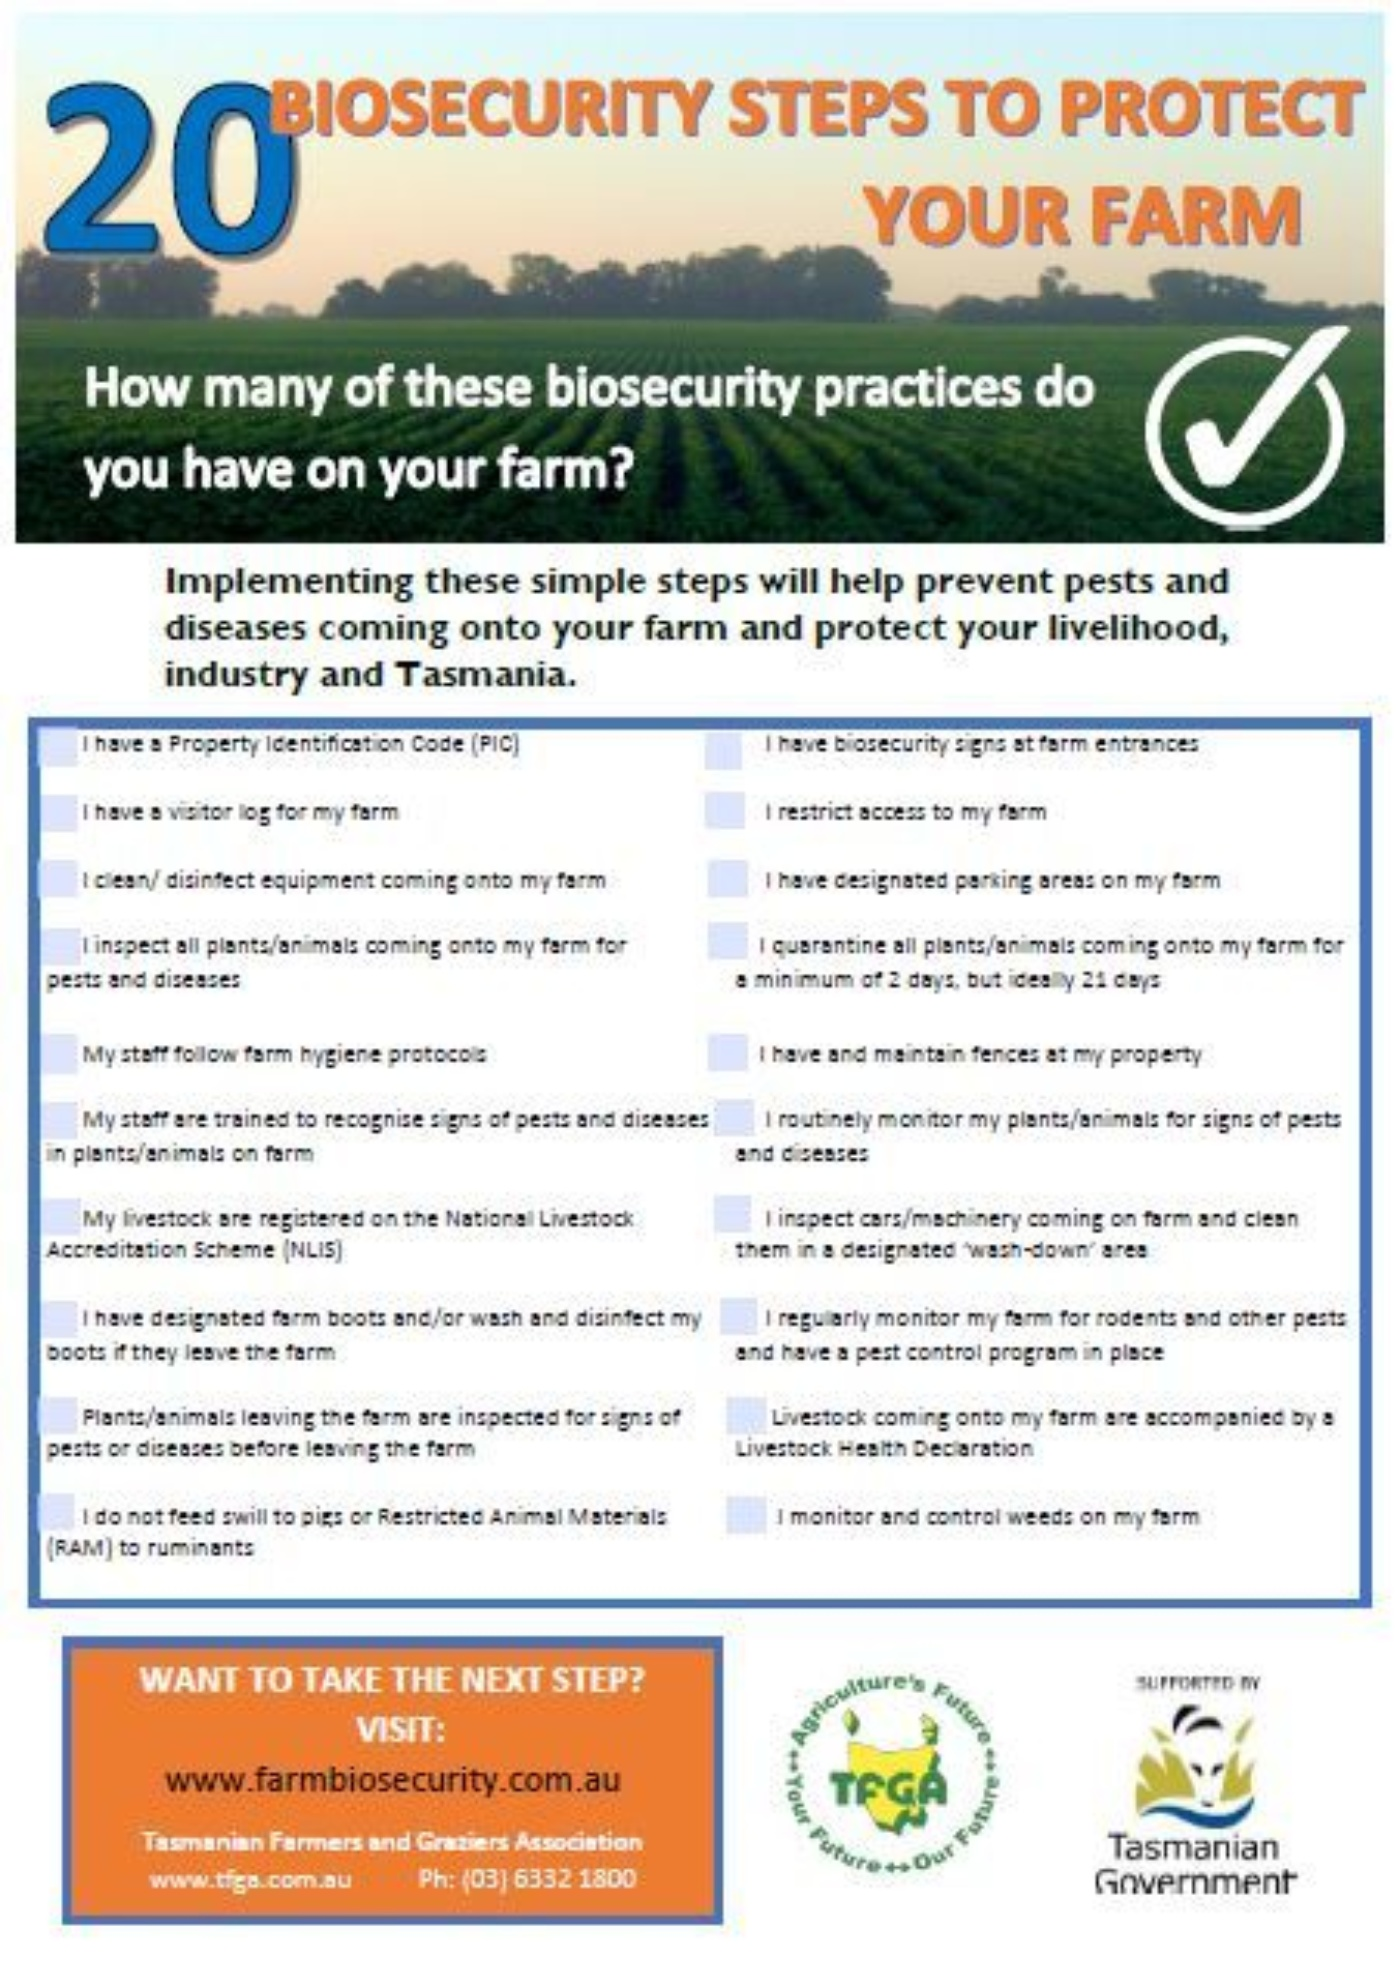 20 Biosecurity Checklist